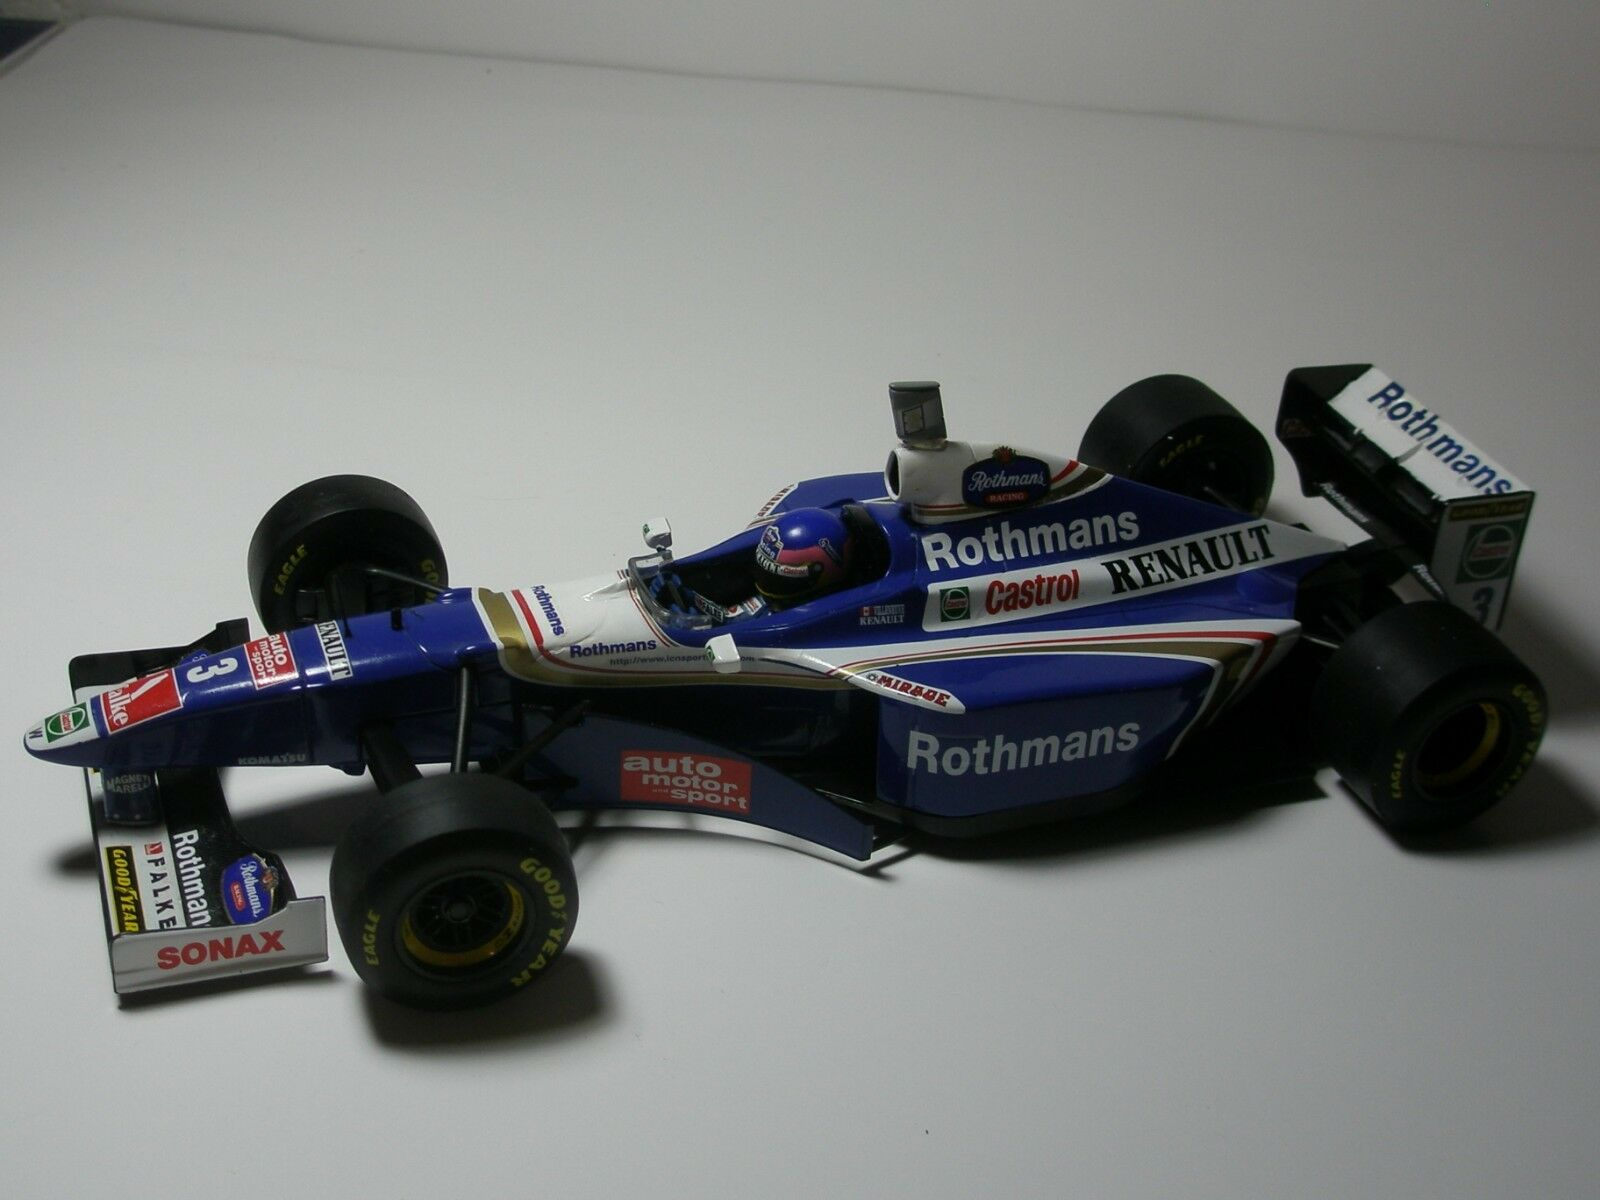 1 18 F1 WILLIAMS 1997 1997 1997 - JACQUES VILLENEUVE WORLD CHAMPION TOBACCO LIVERY 24757b